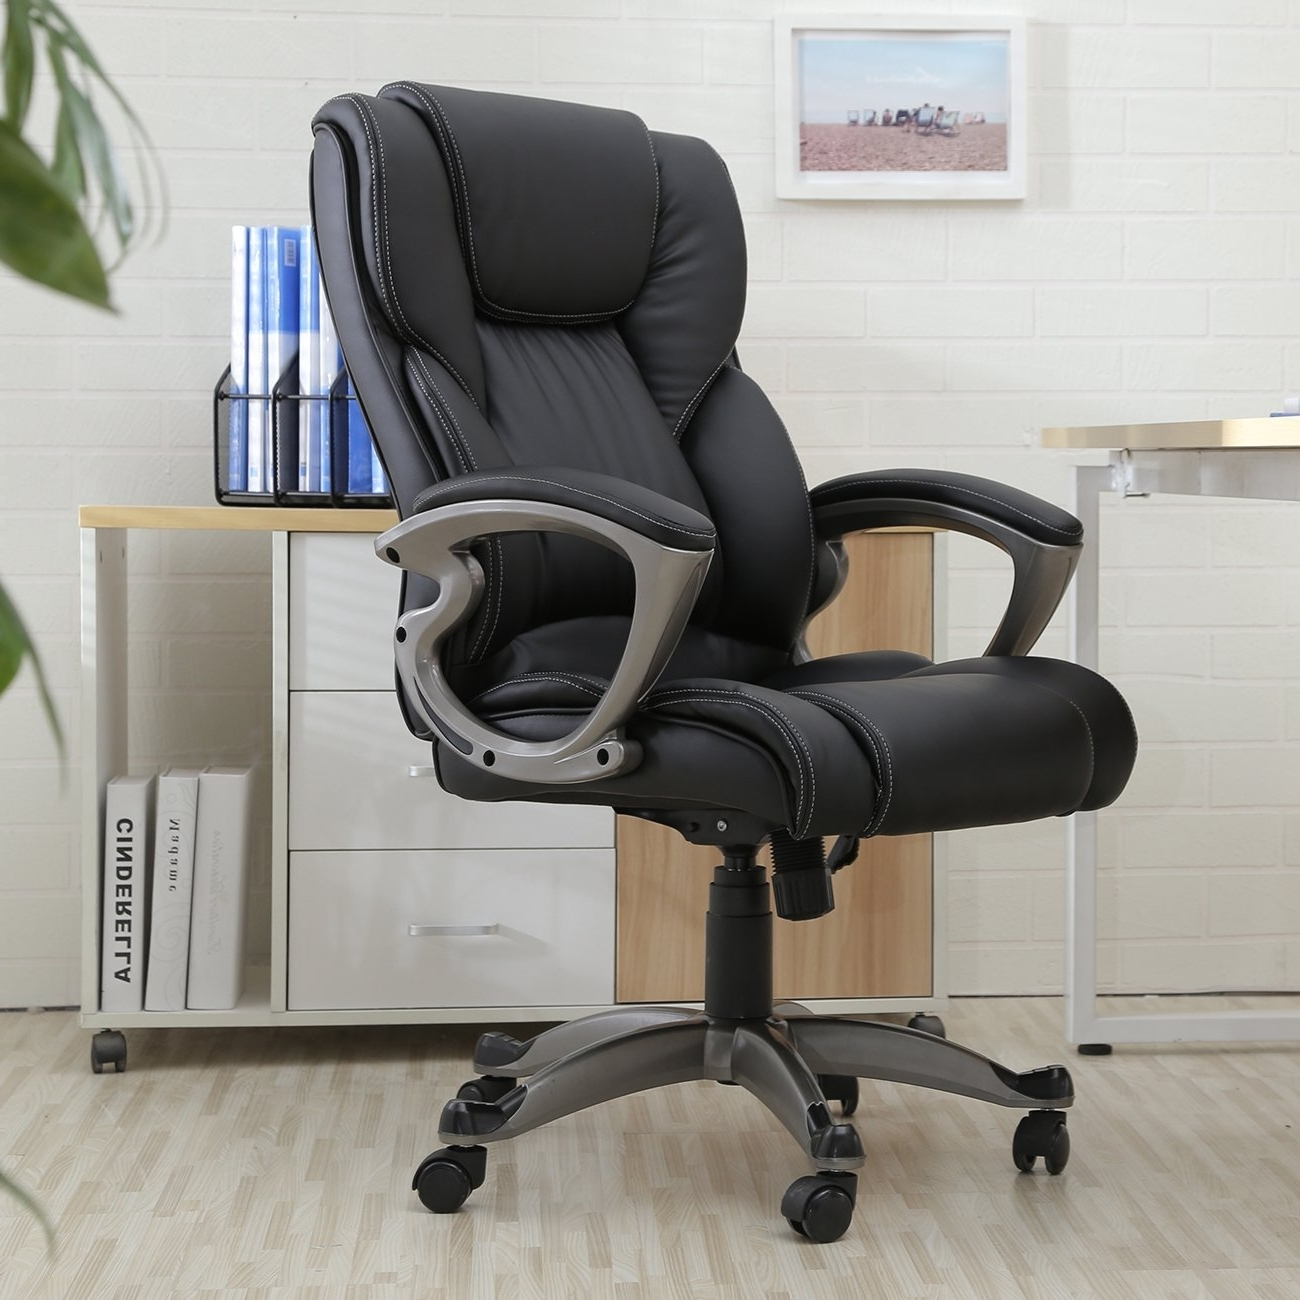 Chairs : Heavy Duty Leather Office Rolling Computer Chair Black Throughout Latest Large Executive Office Chairs (View 19 of 20)